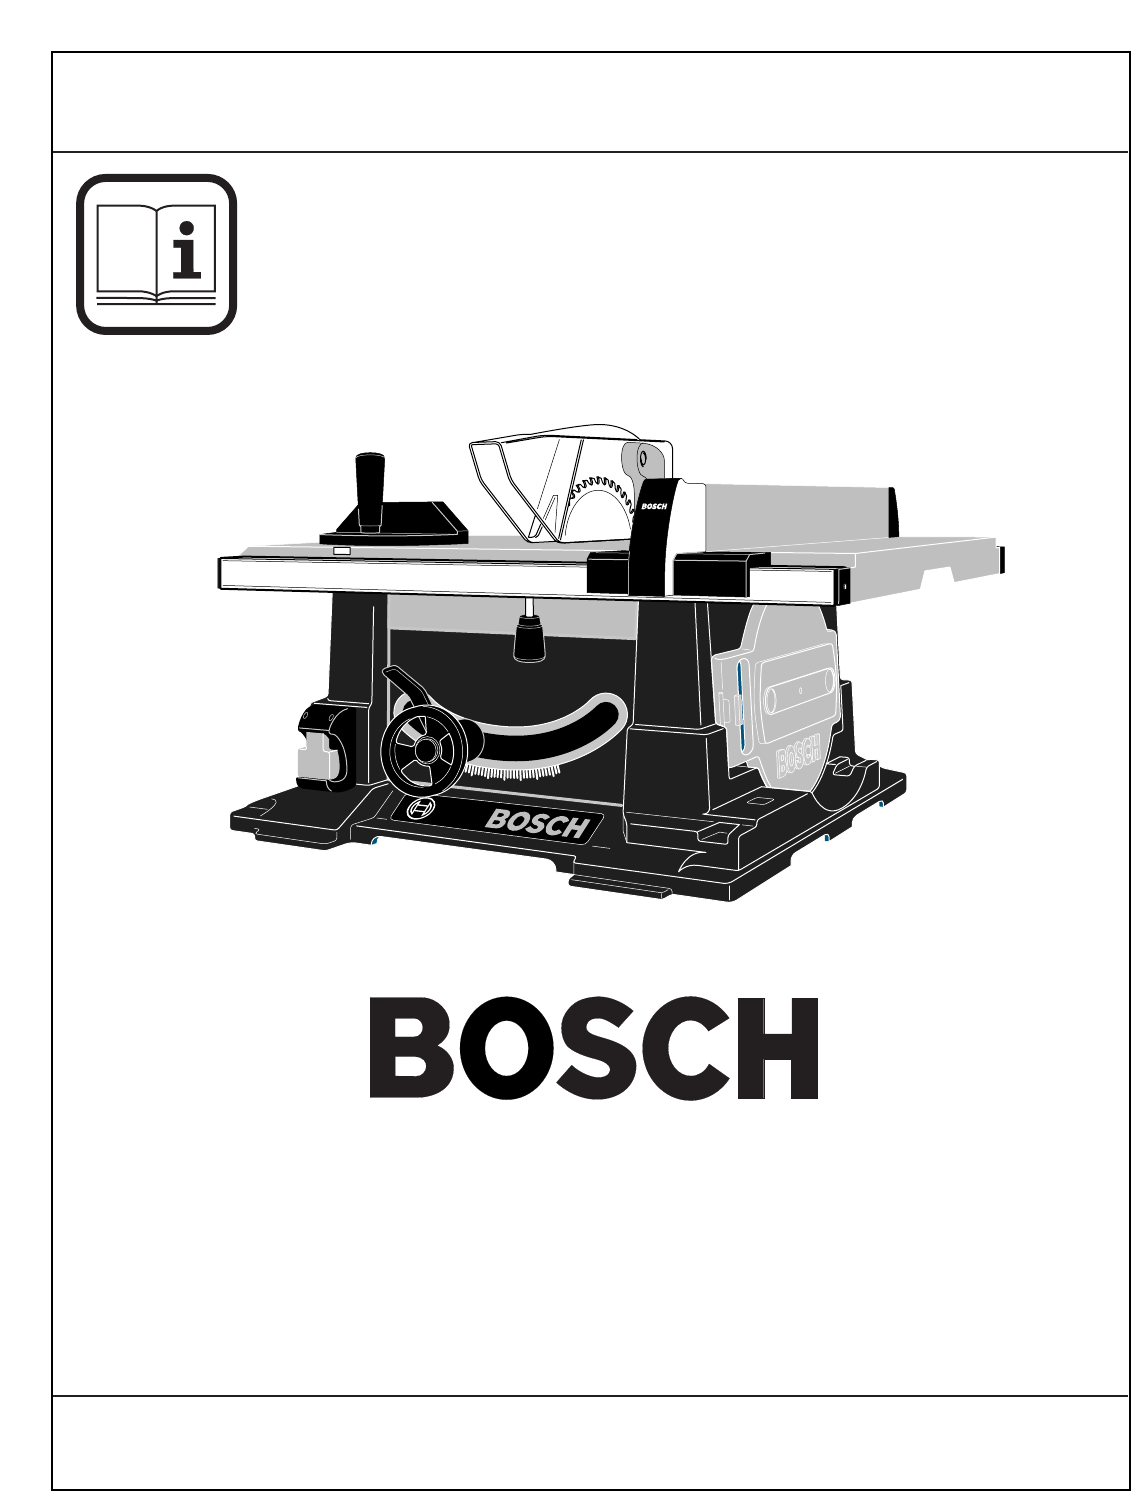 Bosch power tools saw 4000 user guide manualsonline for english parlez vous franais habla espaol keyboard keysfo Image collections